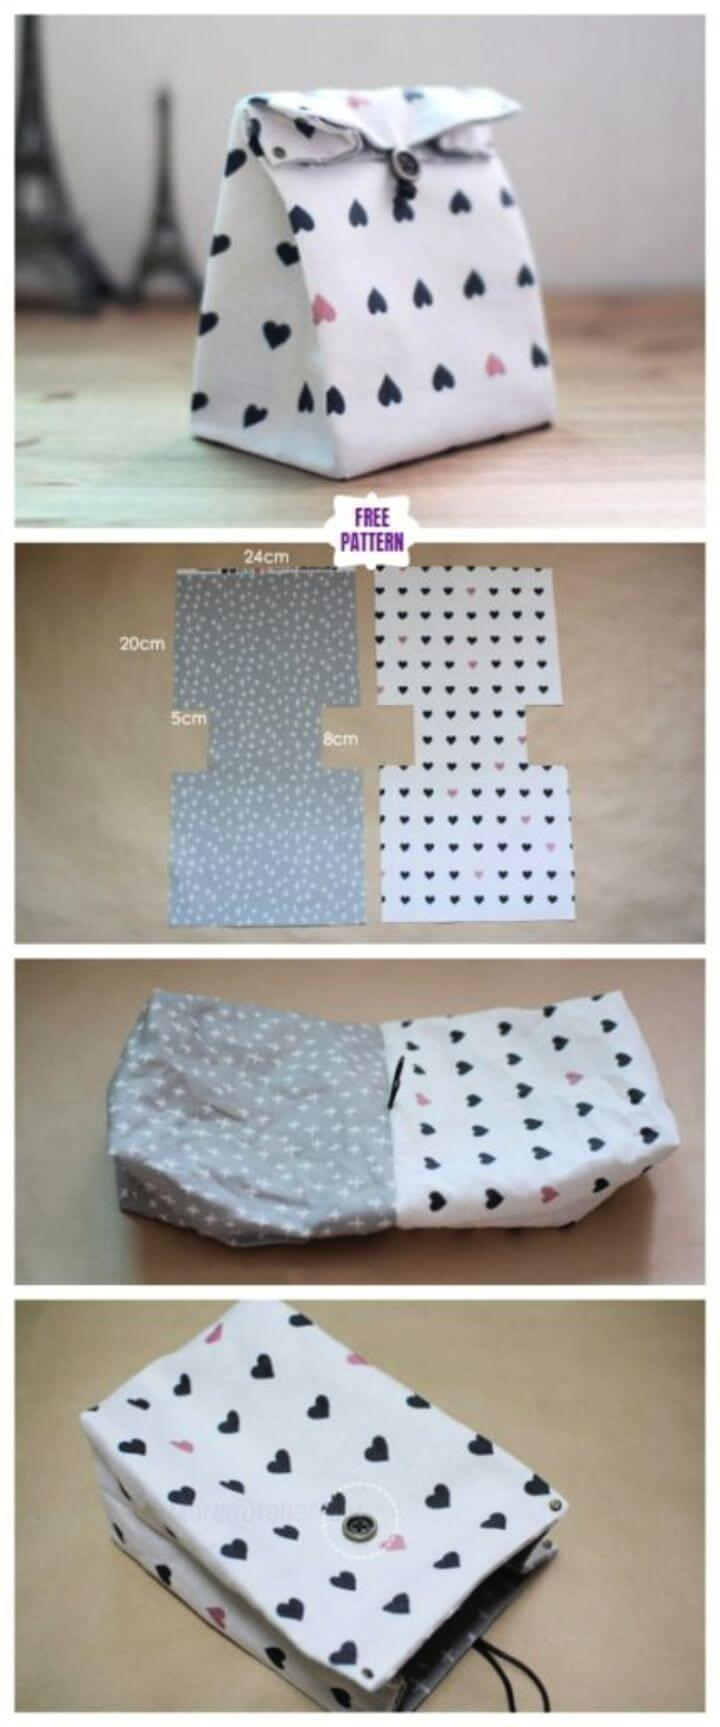 DIY Classic Fabric Gift Bag Free Sew Pattern Tutorial